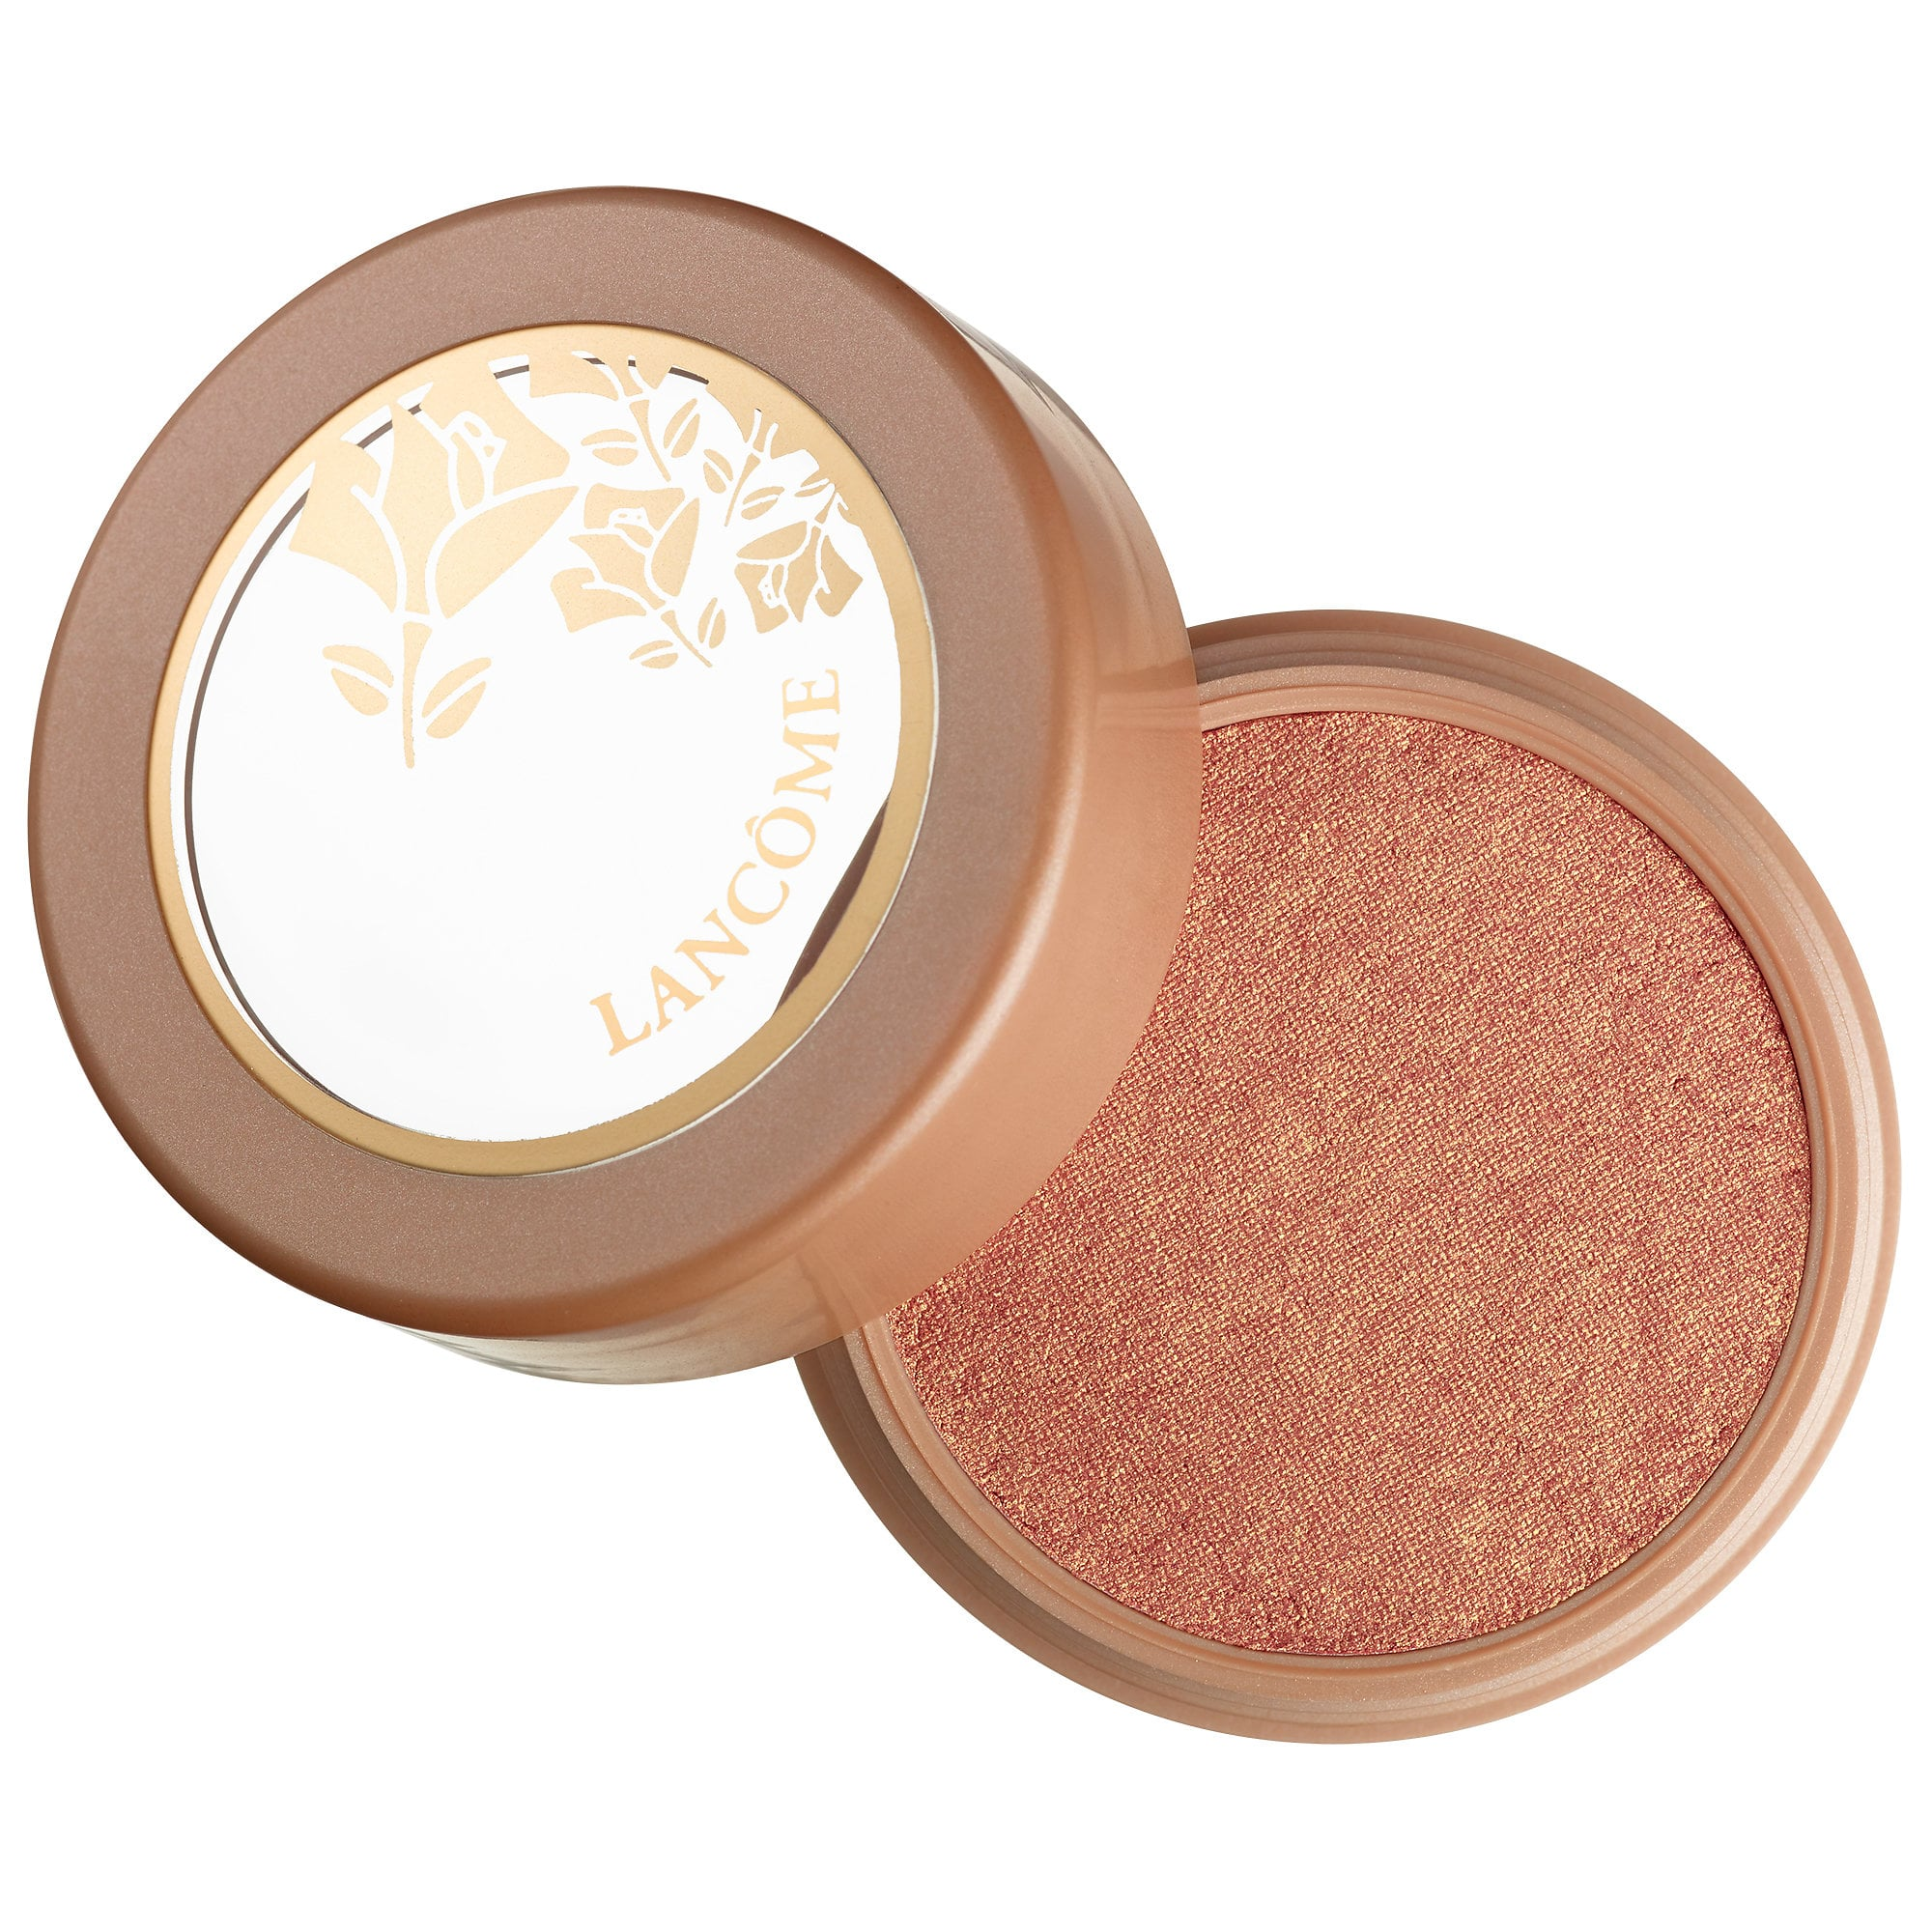 Glow Subtil Silky Creme Highlighter